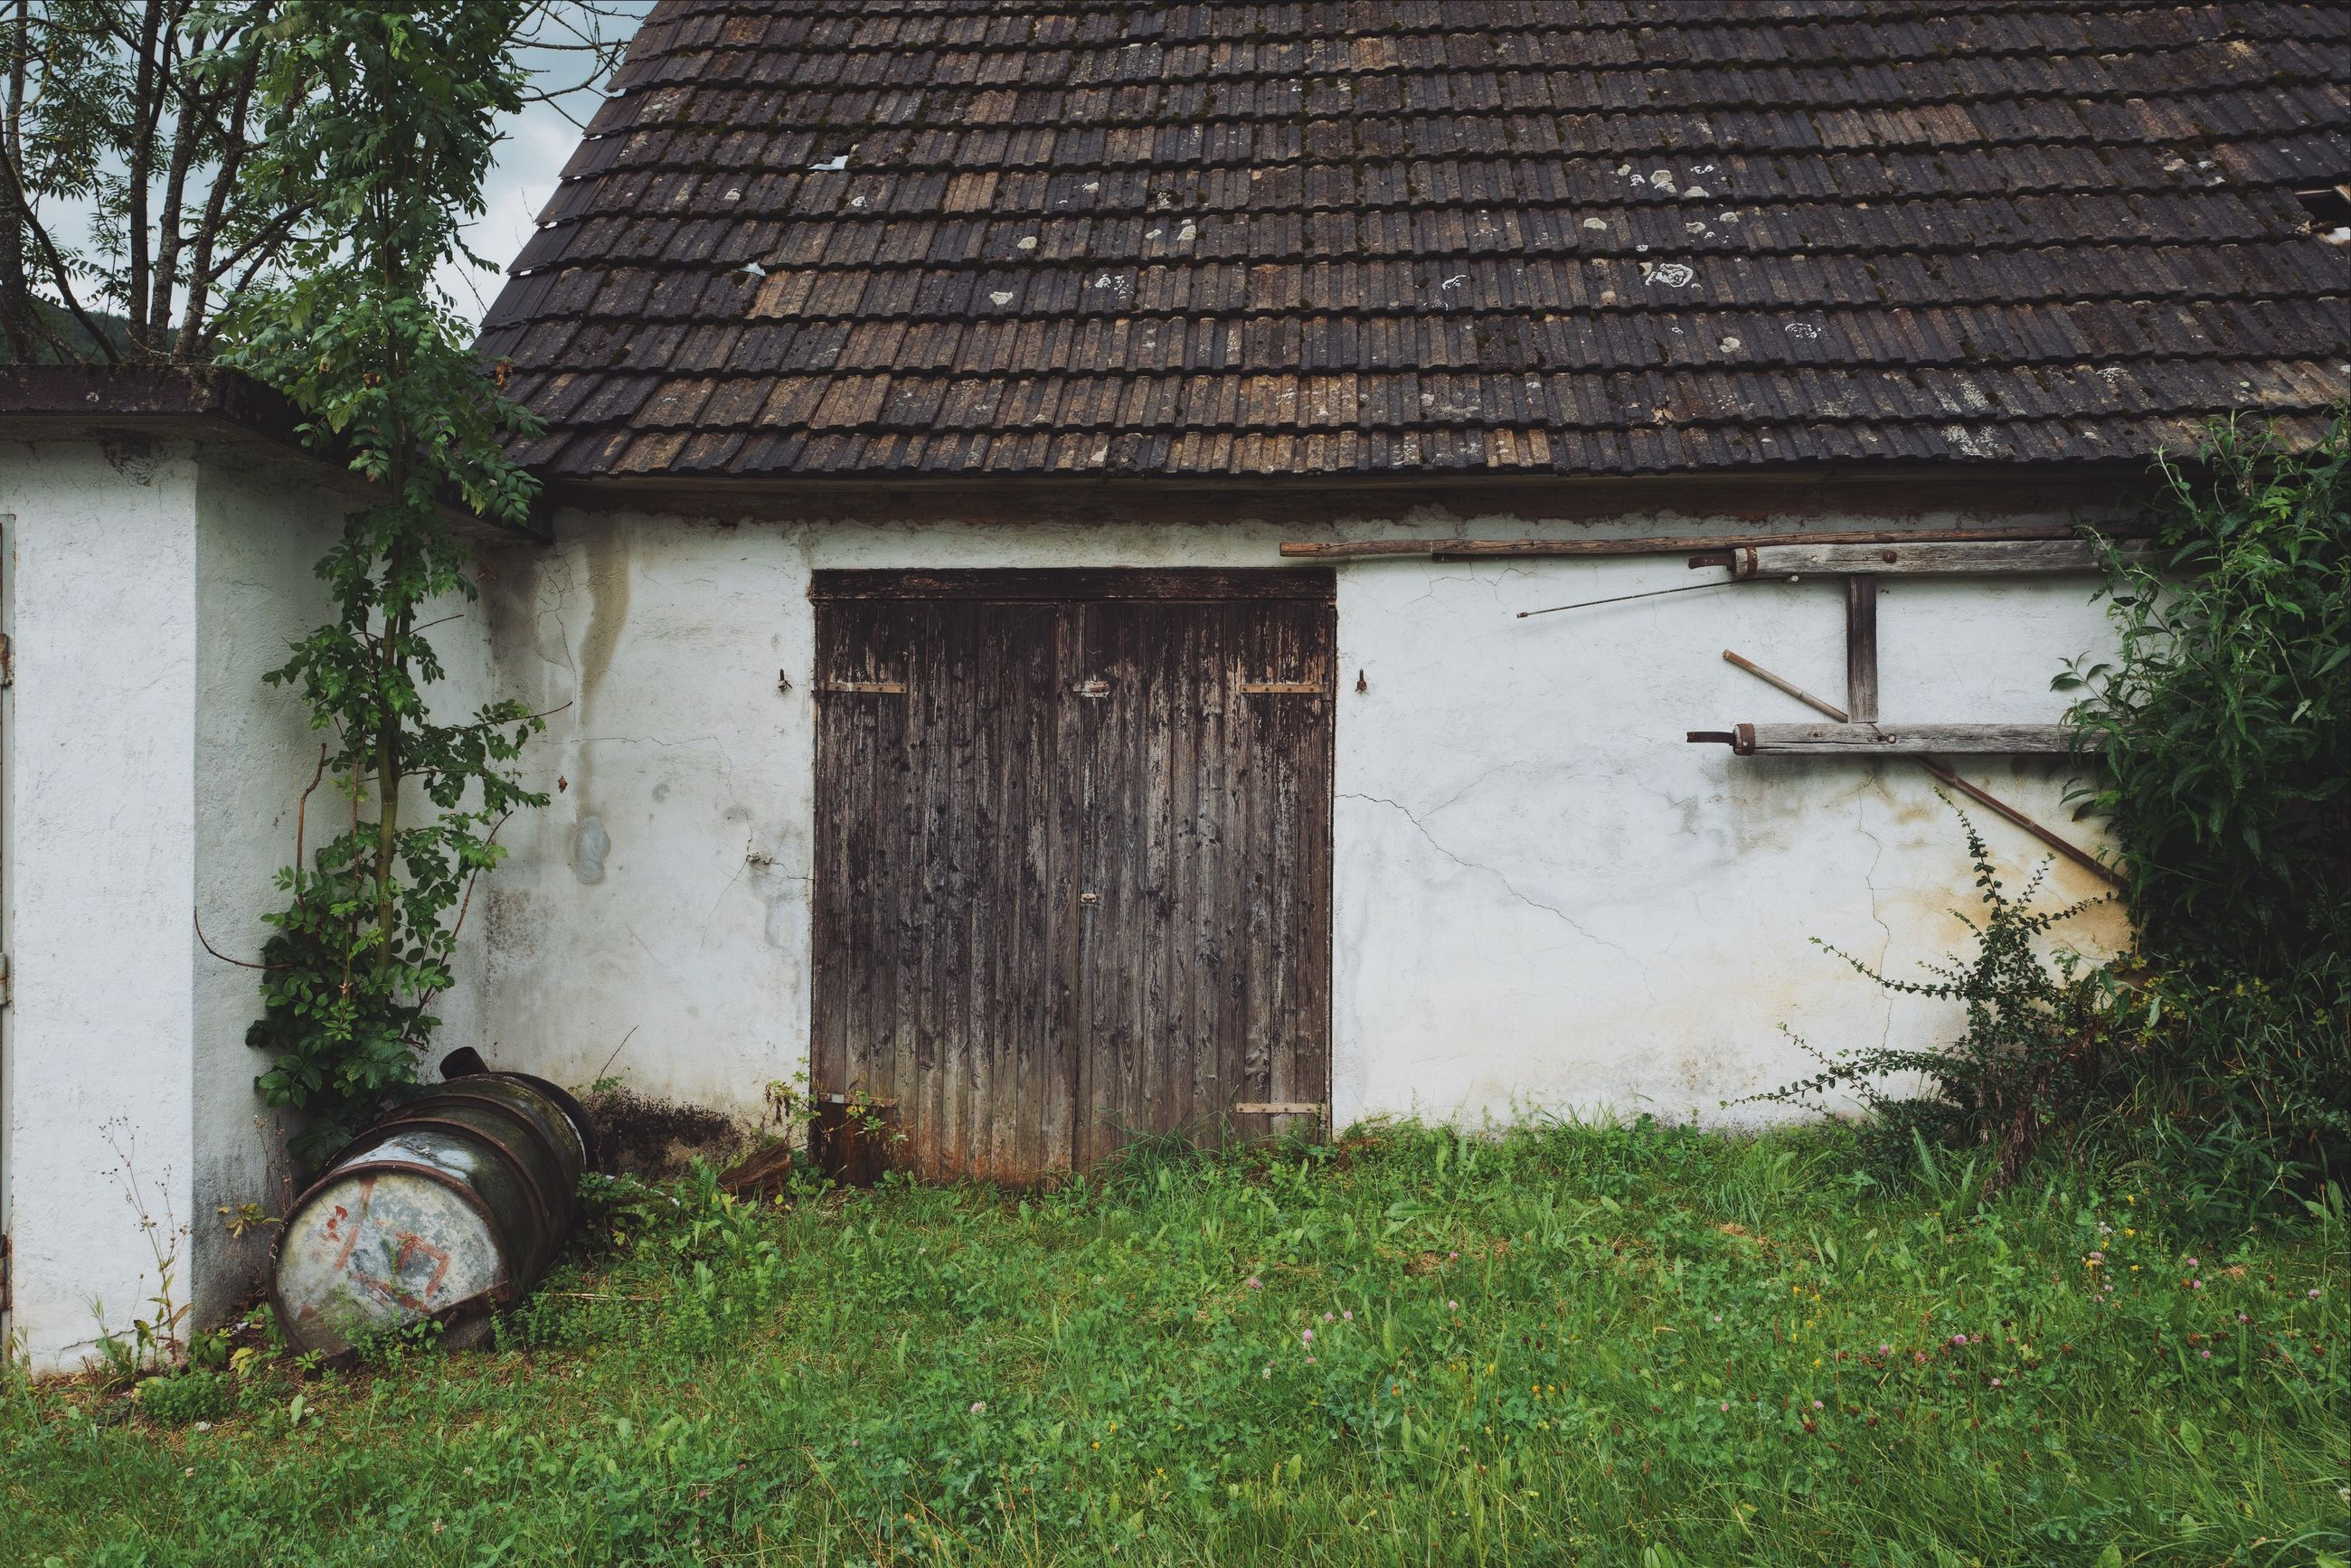 architecture, built structure, building exterior, plant, grass, building, day, house, no people, nature, abandoned, old, green color, roof, outdoors, rural scene, damaged, window, landscape, residential district, wheel, roof tile, garage